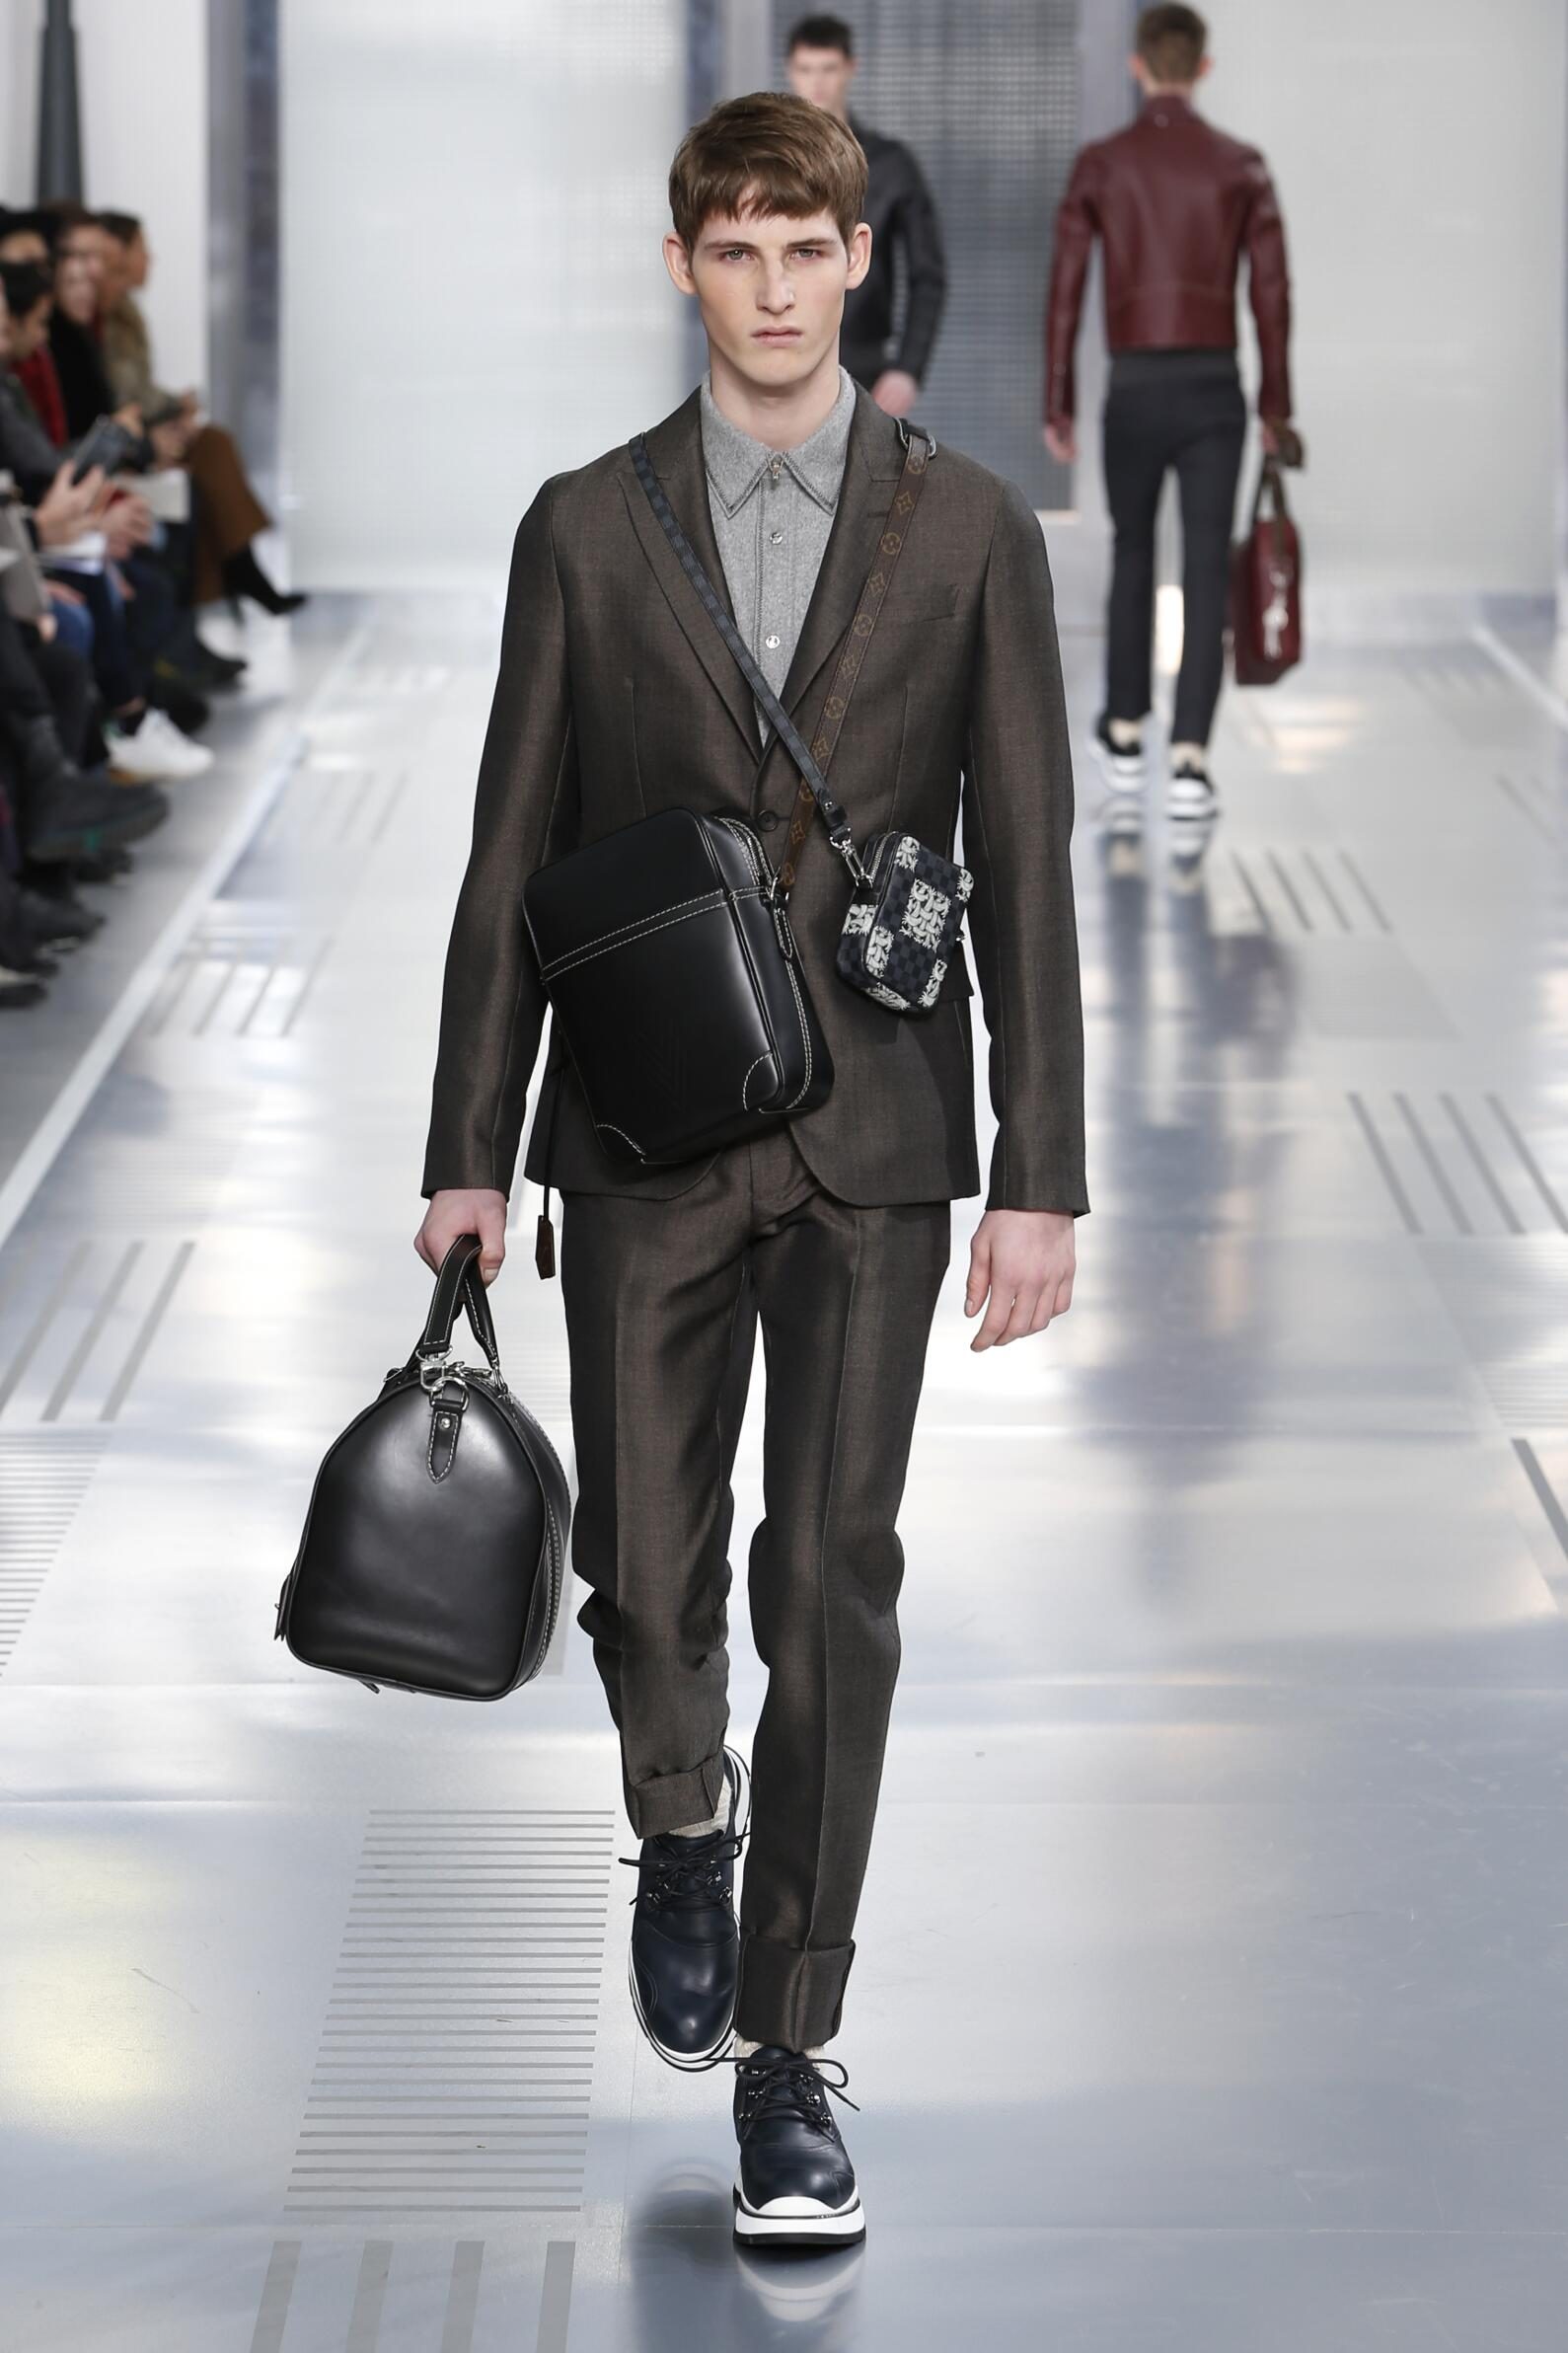 Louis Vuitton Collection Man Paris Fashion Week